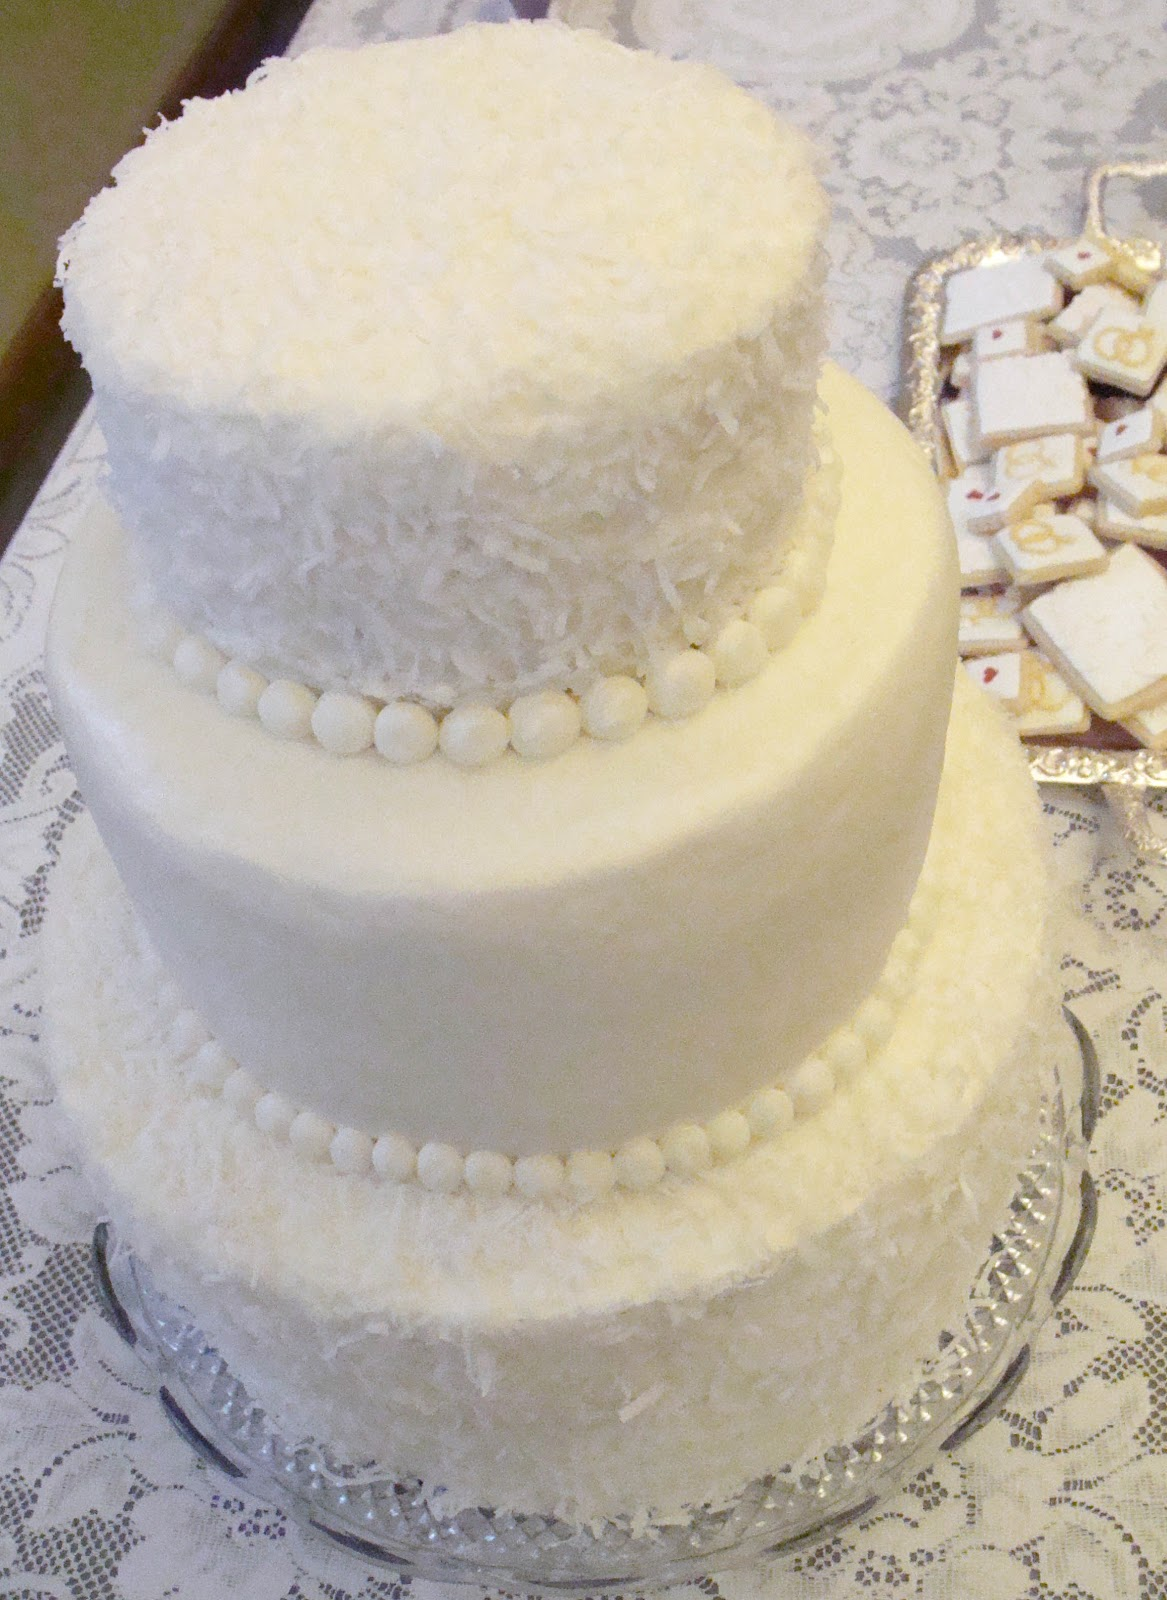 coconut buttercream frosting - and a wedding cake!